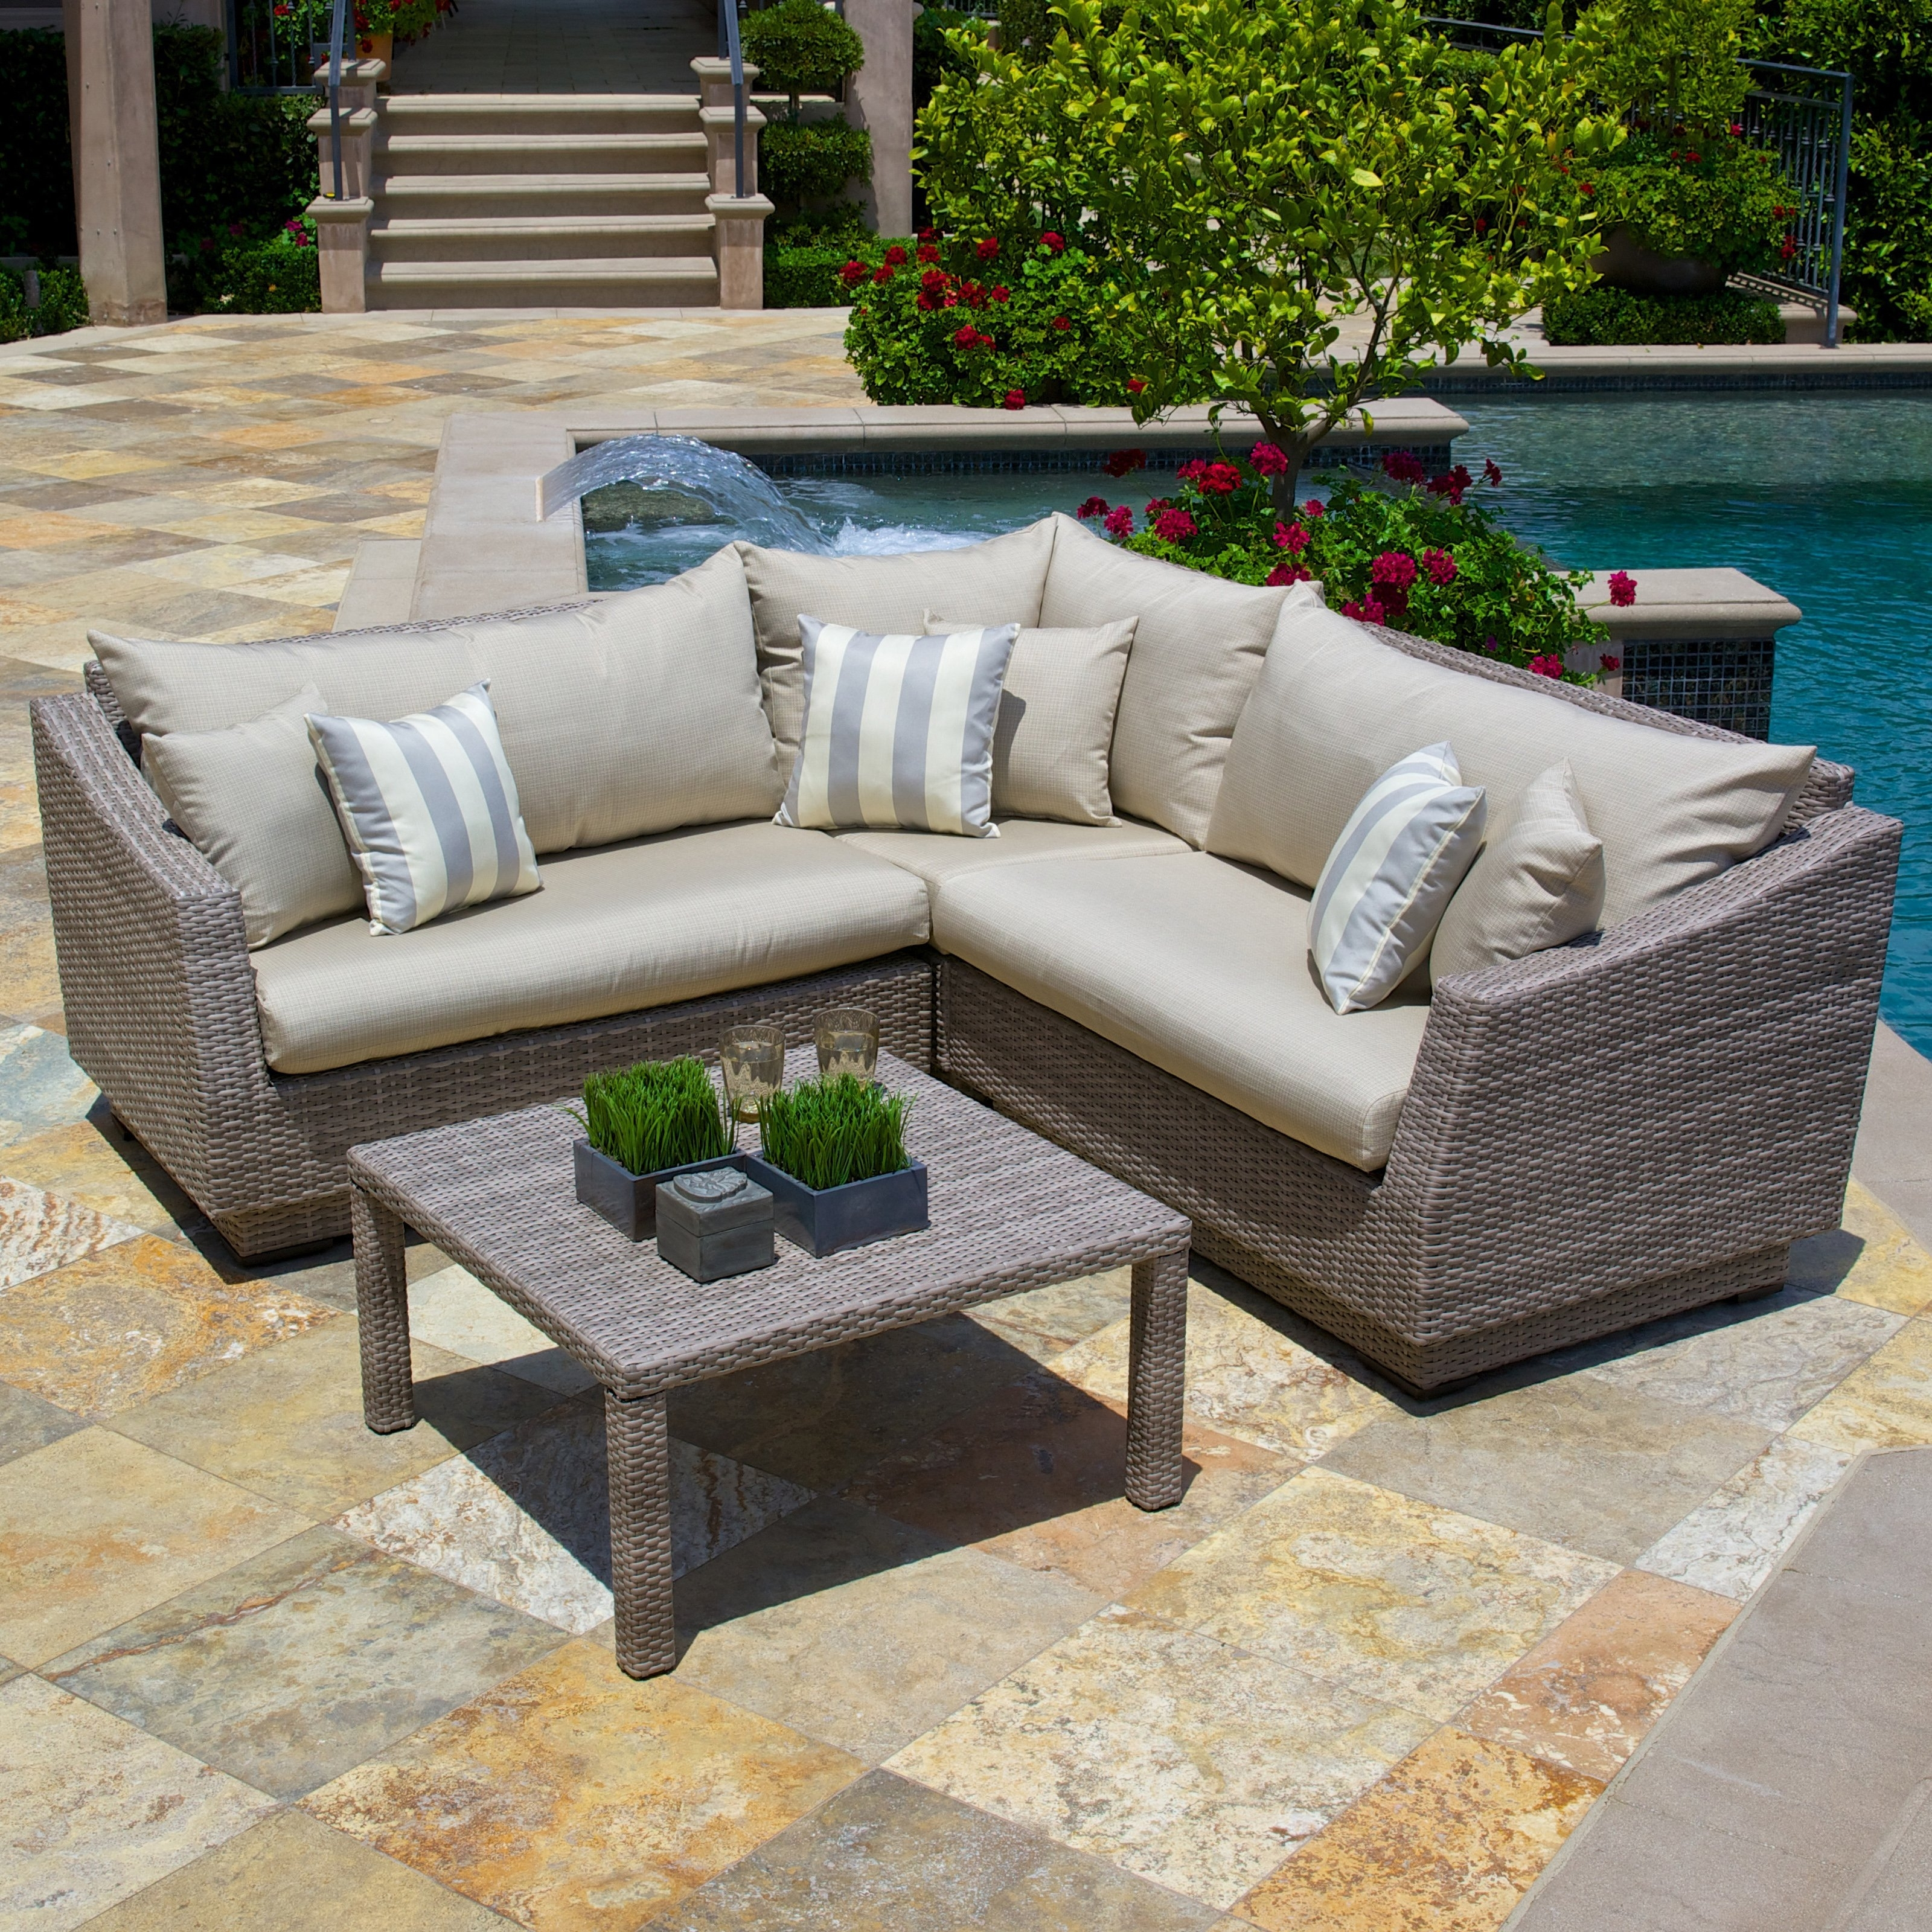 Widely Used Gray Patio Dining Sets Marvelous Popular Of Furniture Fashionable Pertaining To Grey Patio Conversation Sets (View 16 of 20)